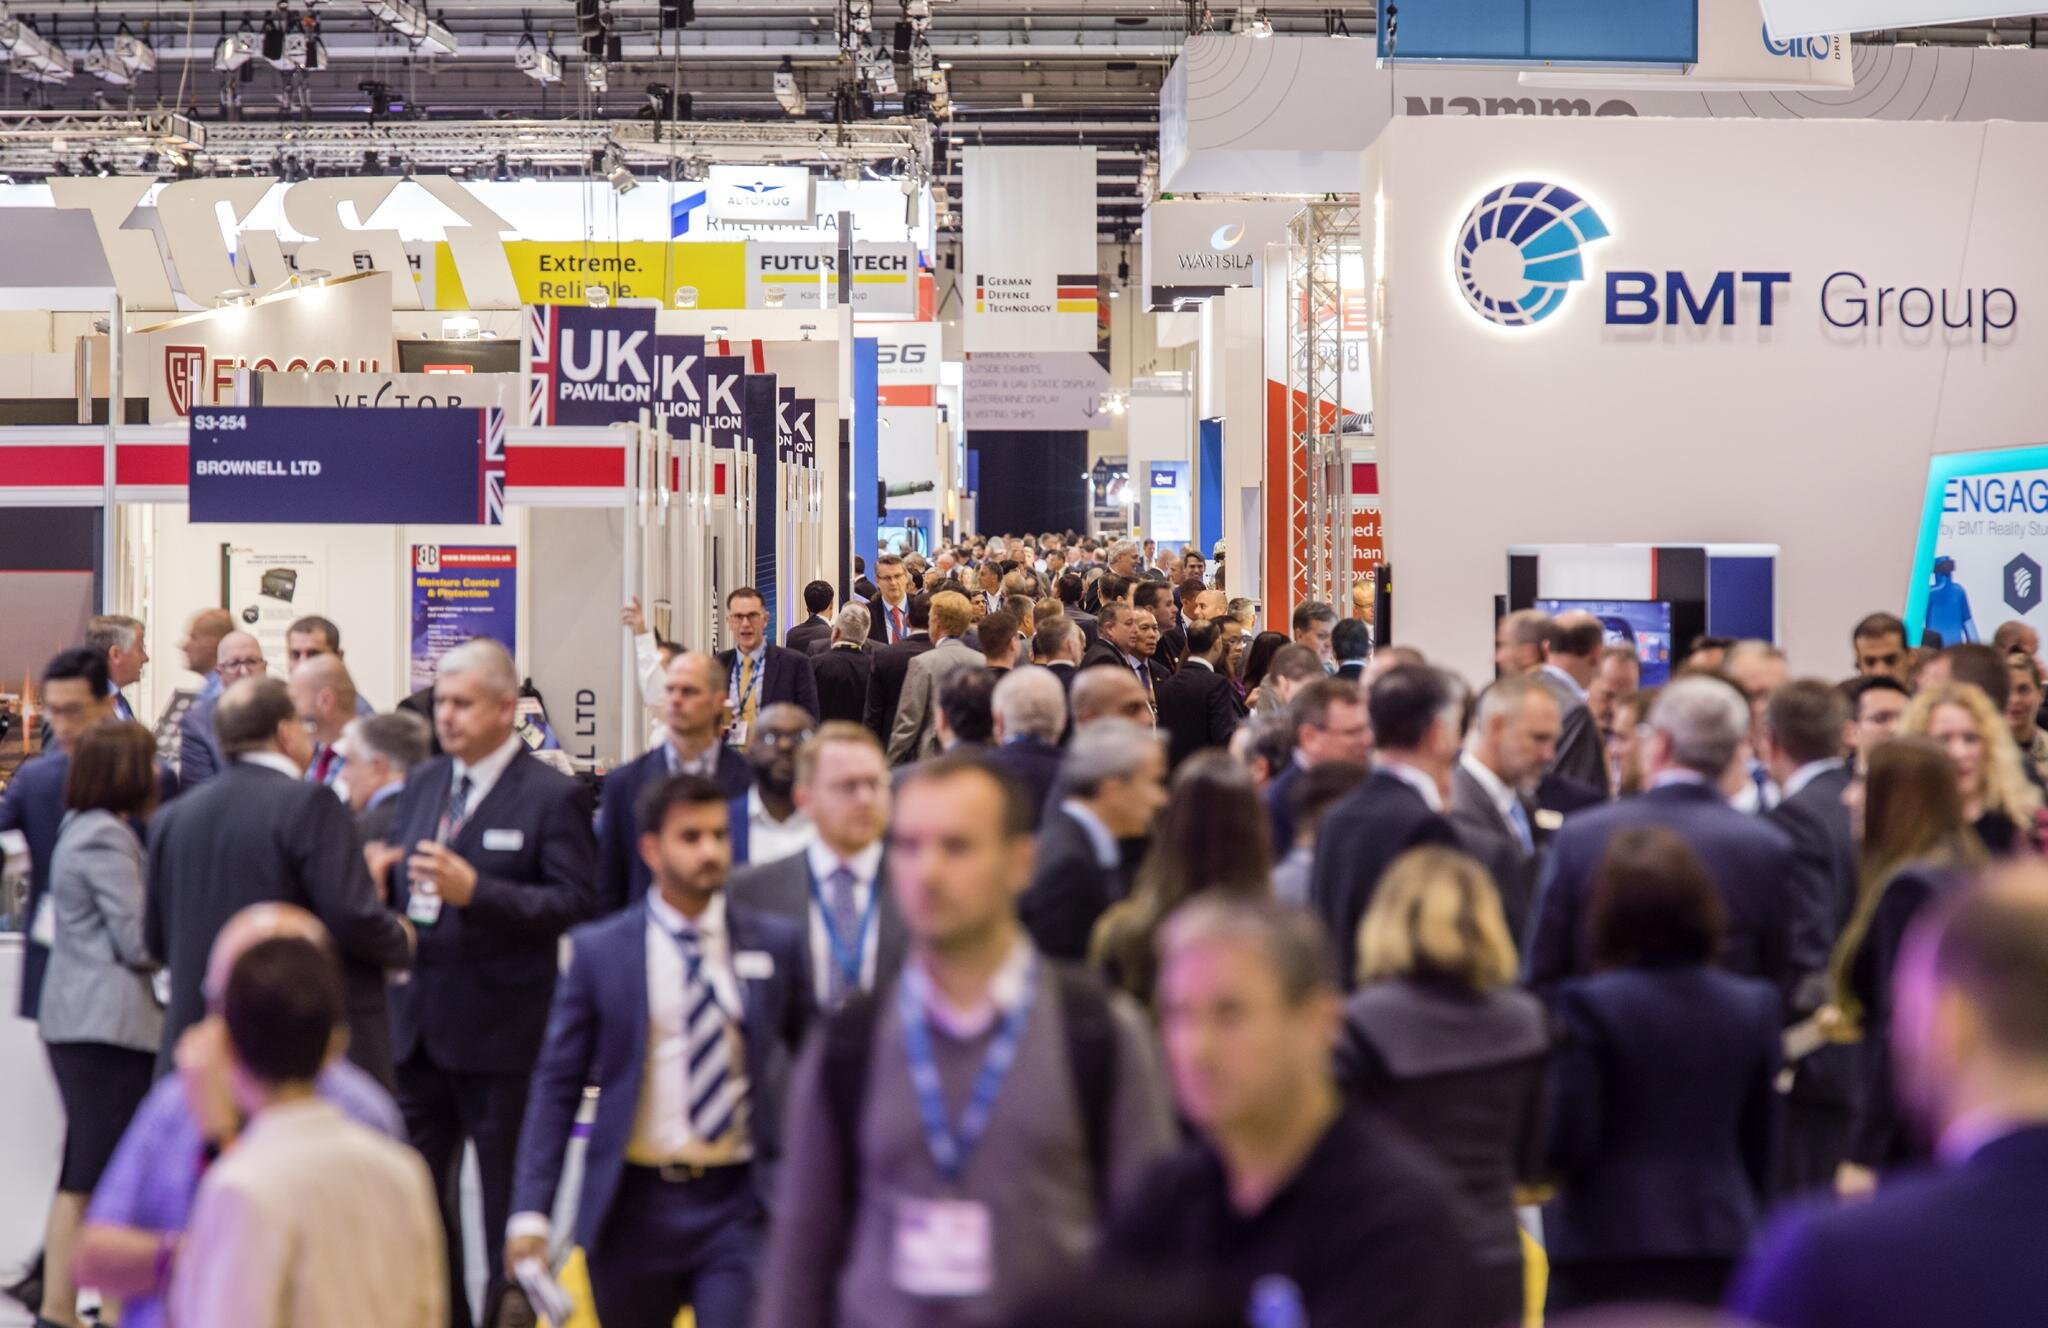 Successful DSEI Event - 10 Sep 2019 - 13 Sep 2019Igence Software Ltd had a very successful event at DSEI 2019 and would like to thank everyone who took the time to speak with us.To catch the highlights of the event, click here.